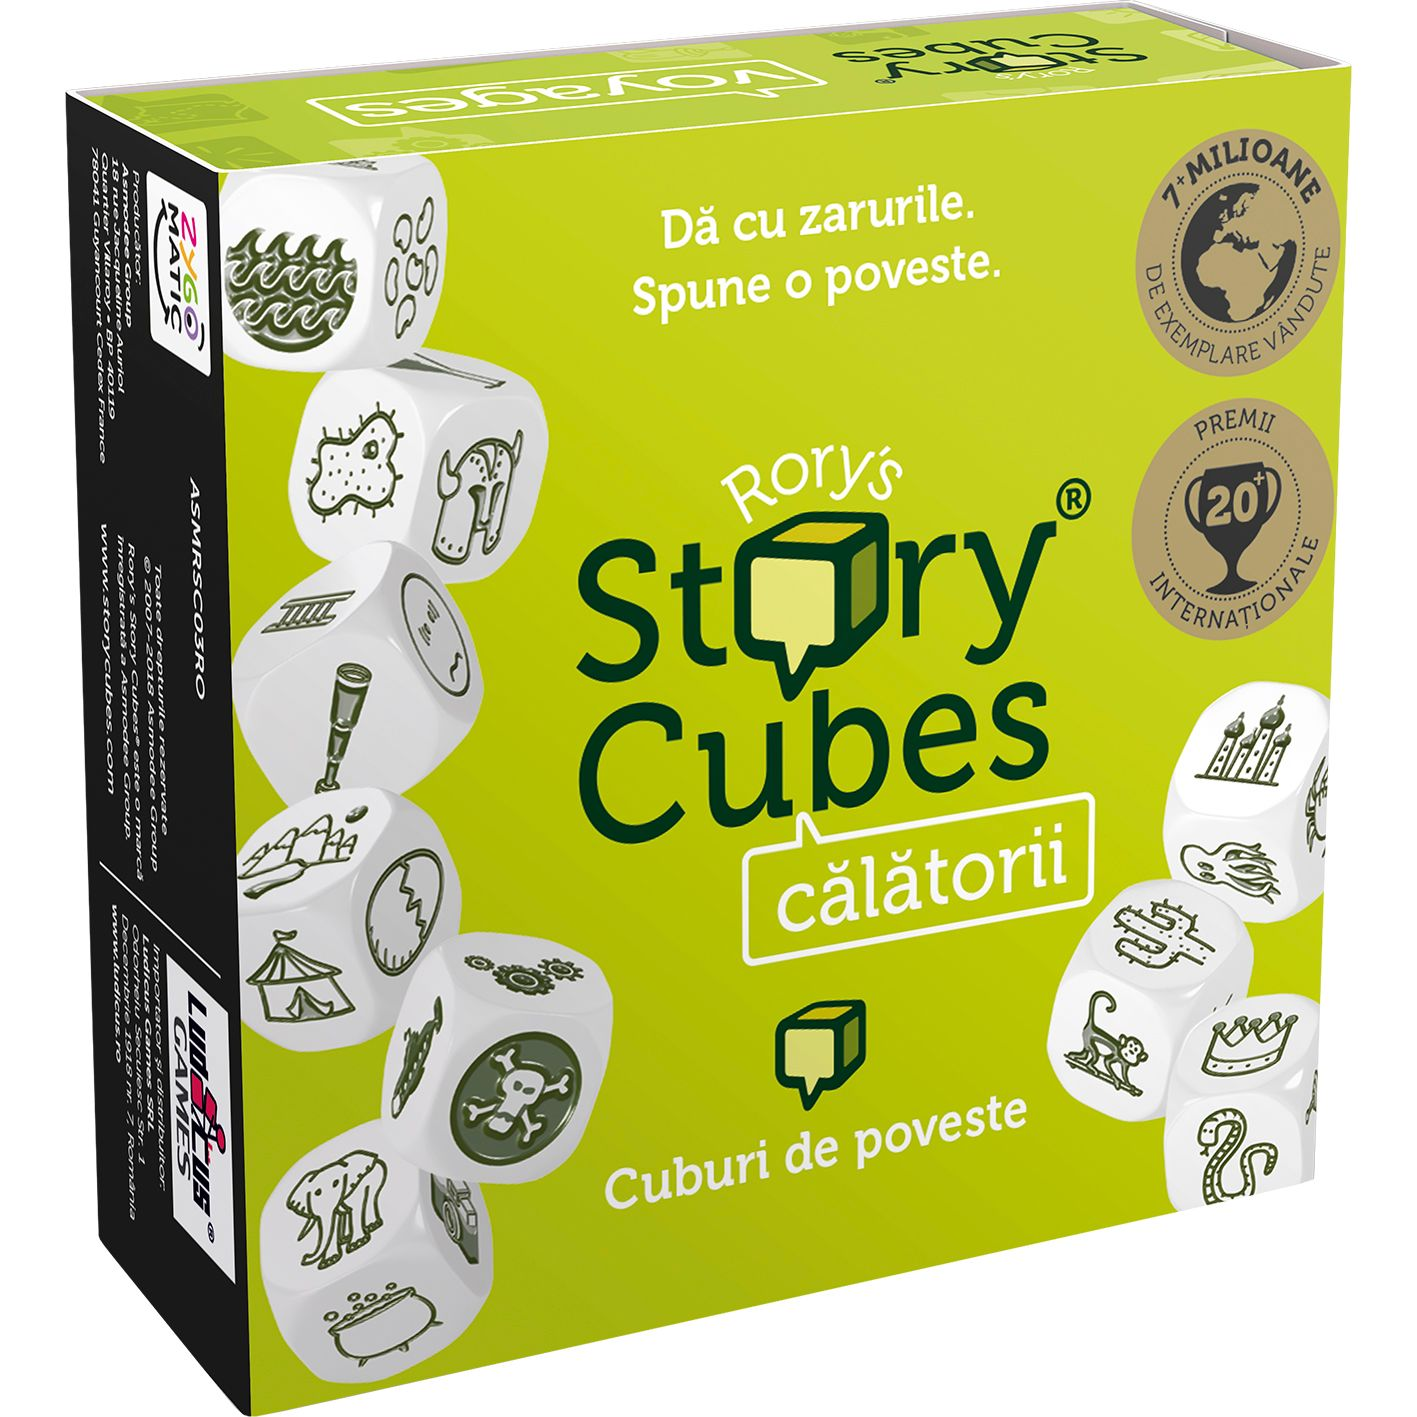 Rory's Story Cubes - Calatorii | Rory's Story Cubes